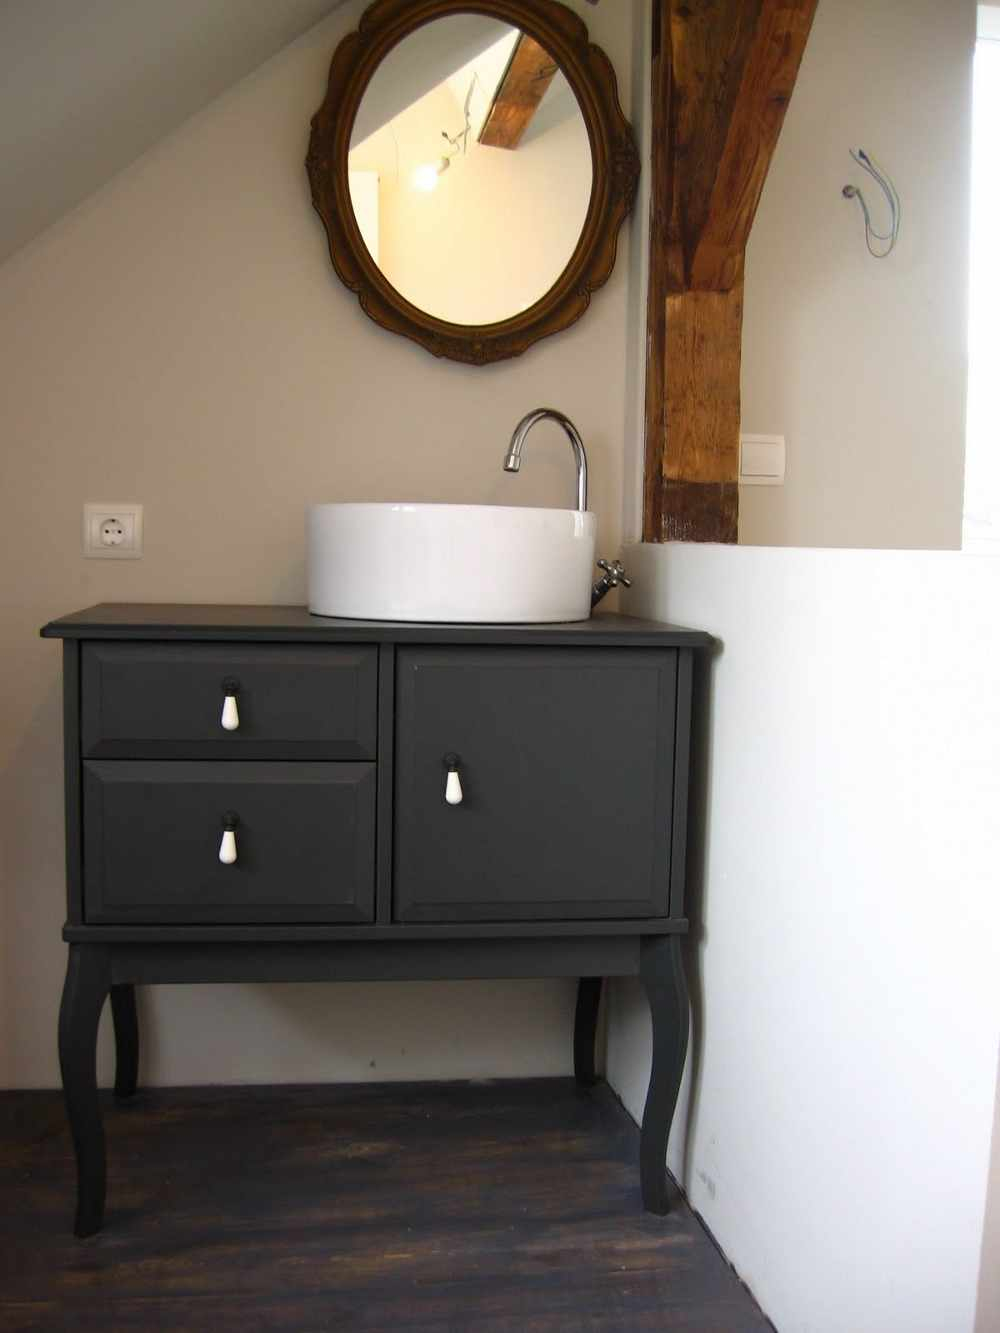 Beautiful Amazing Of Excellent Black Ikea Bathroom Vanities Ideas A #3242 with Bathroom Vanities Ikea